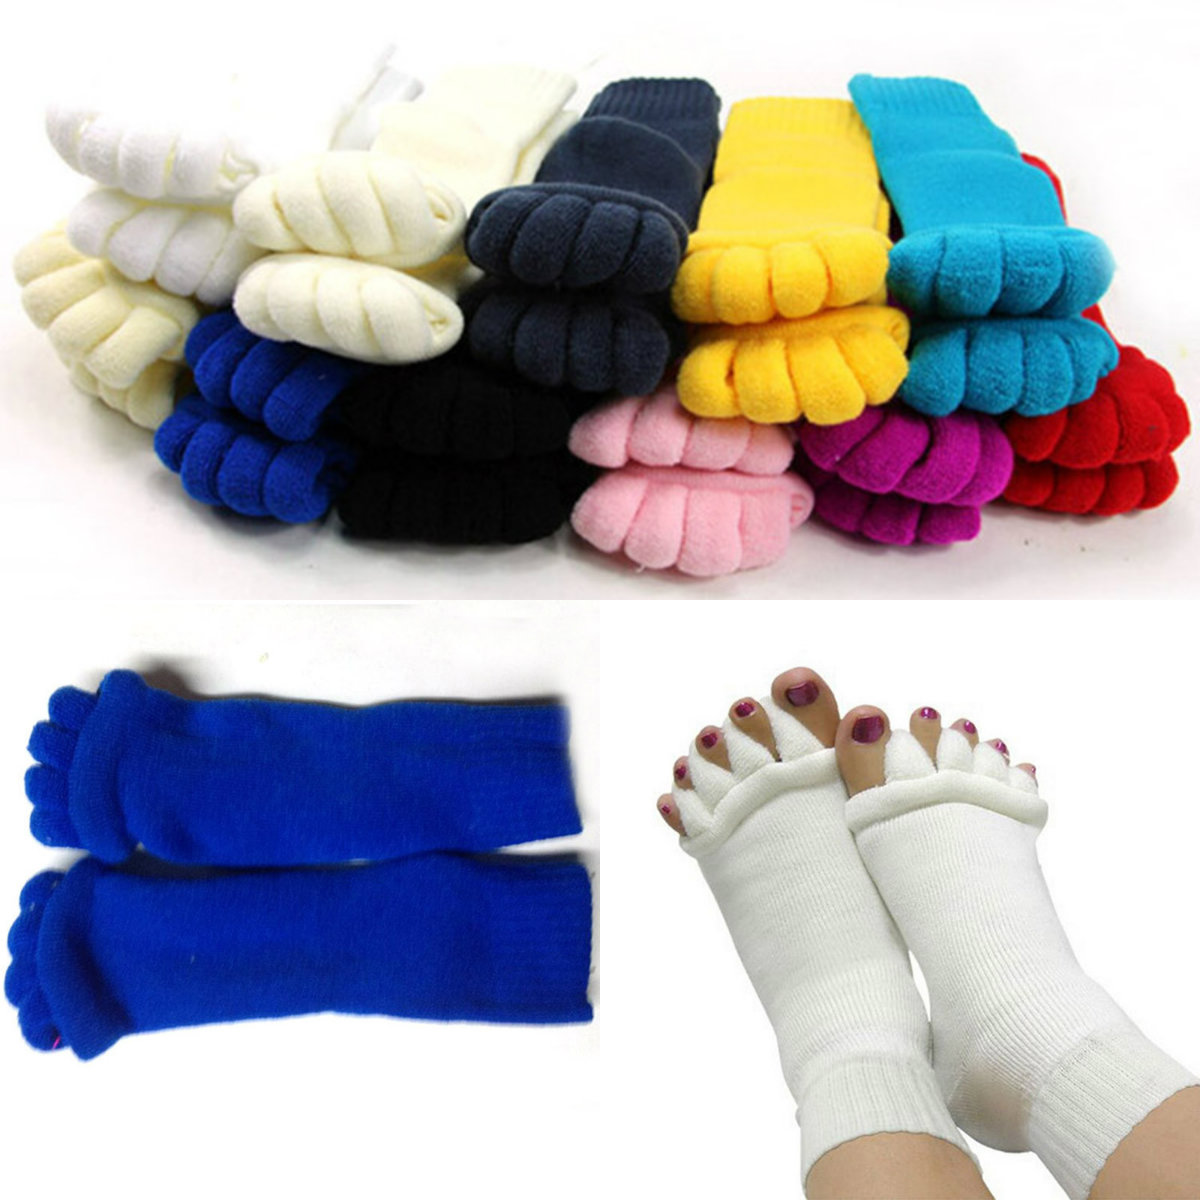 1 Pair Five Toe Socks Fingers Toes Separator Foot Alignment Pain Relief Massage Socks Gift For Woman Health Care 6 Colors